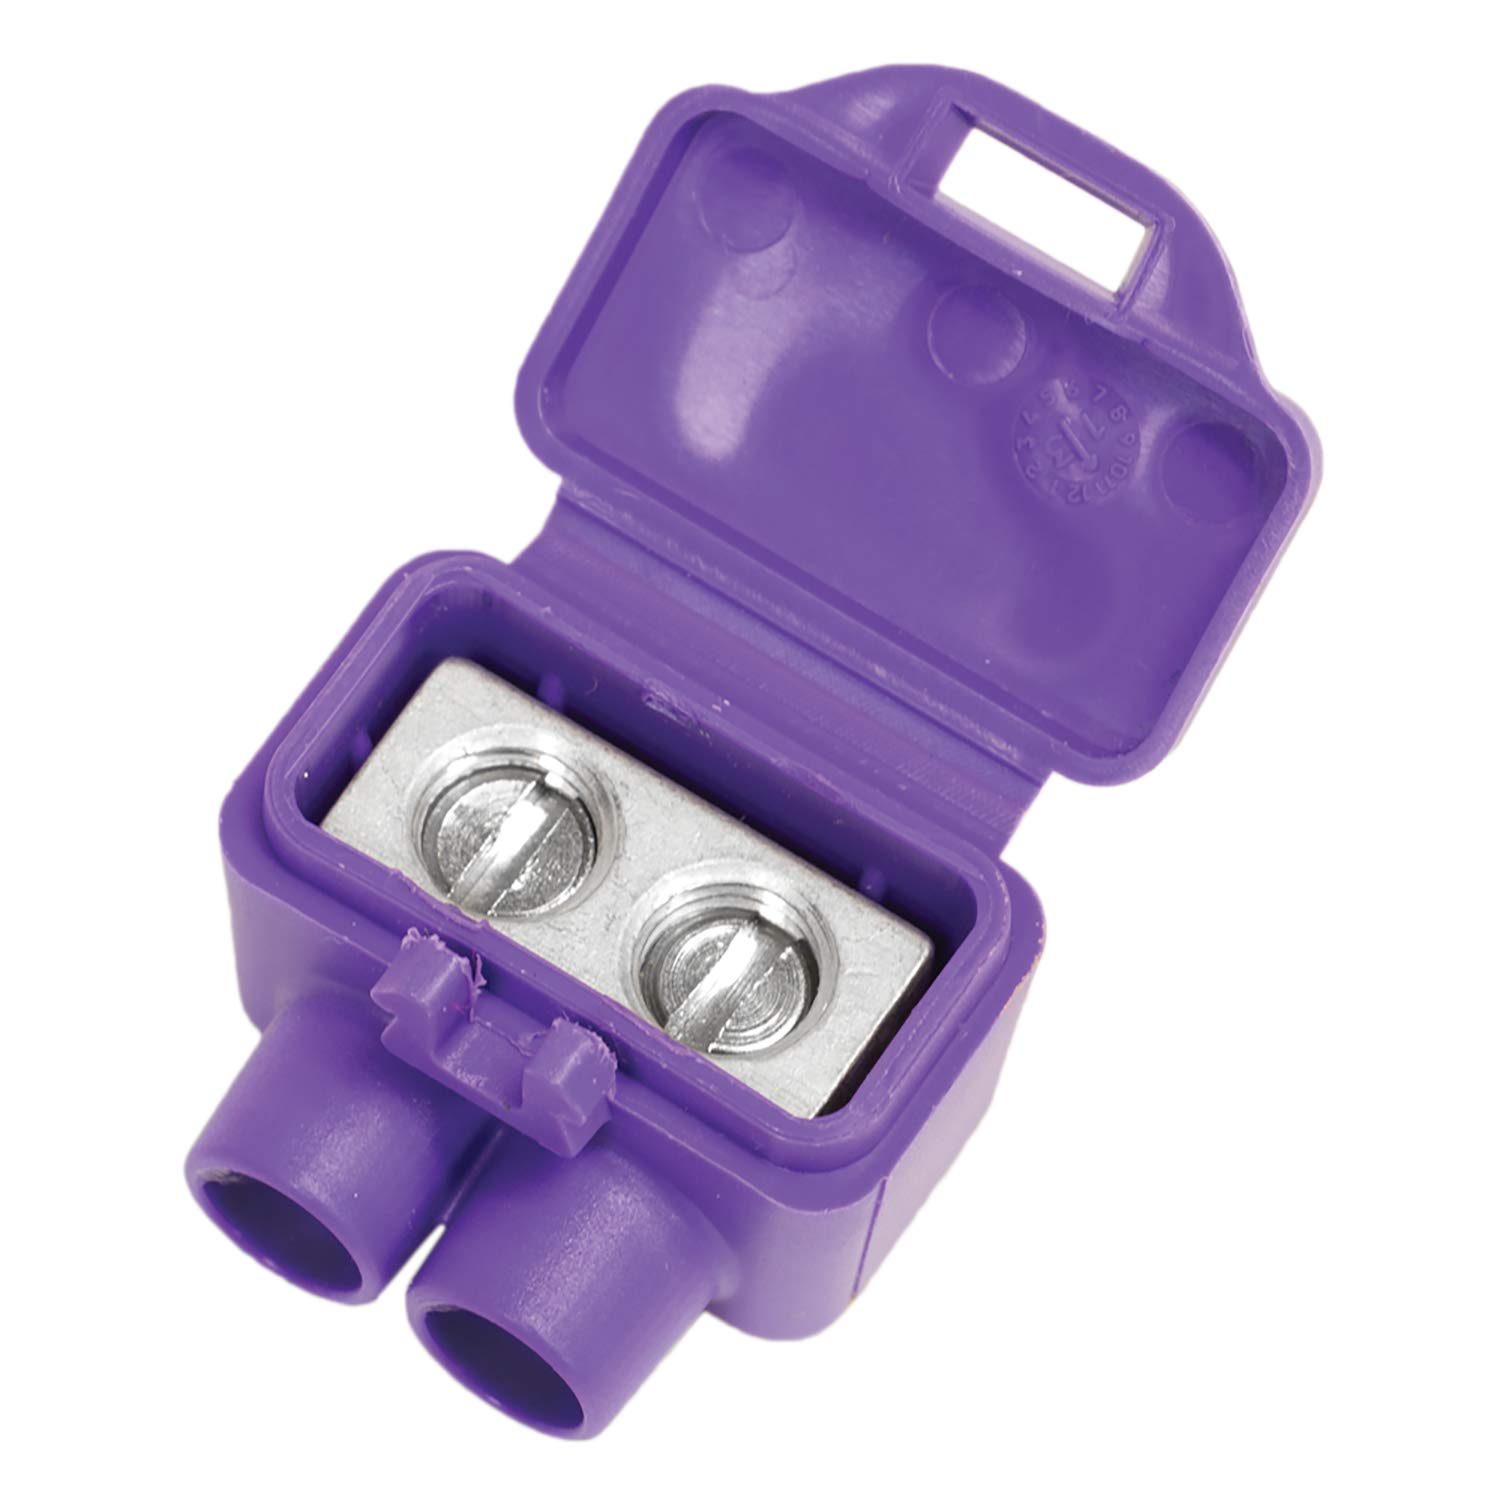 King Innovation 95015 AlumiConn wire connector, 10 pk, Purple